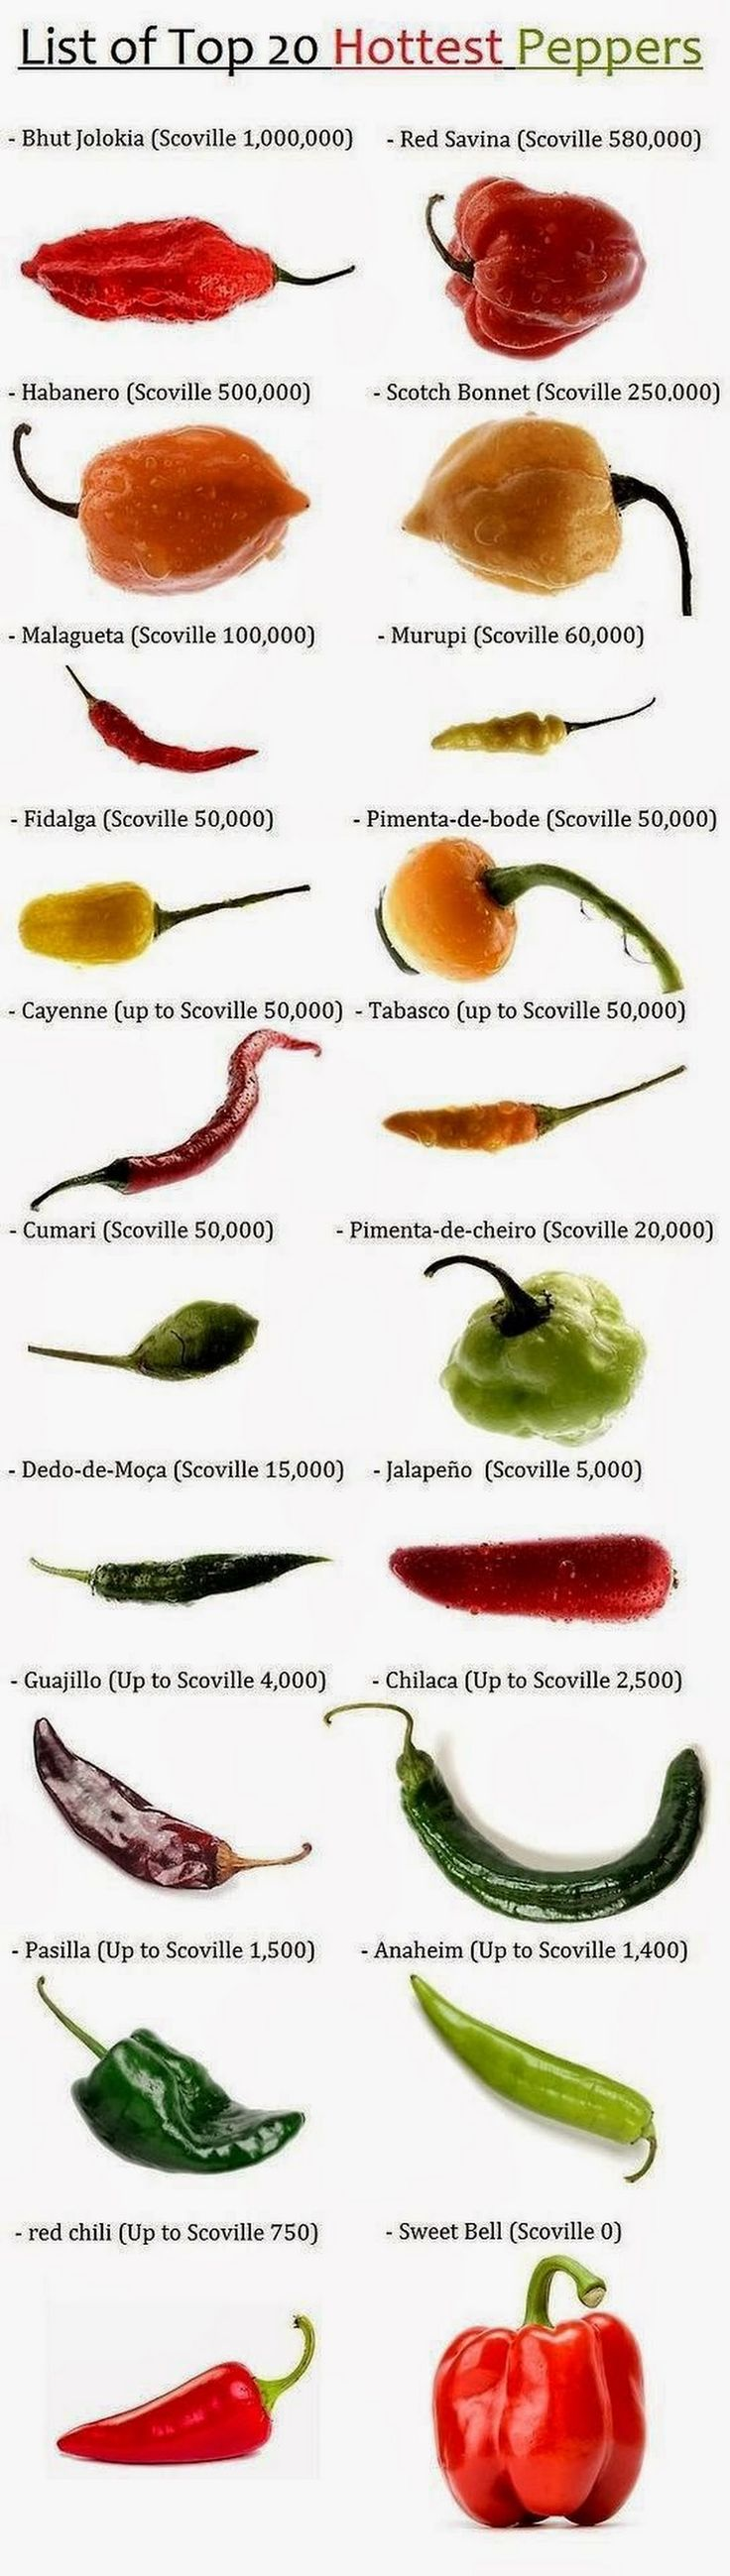 How to Grow Hot Chili Peppers from Seed : http://goo.gl/8NgWrU - Skills for Survival - Google+